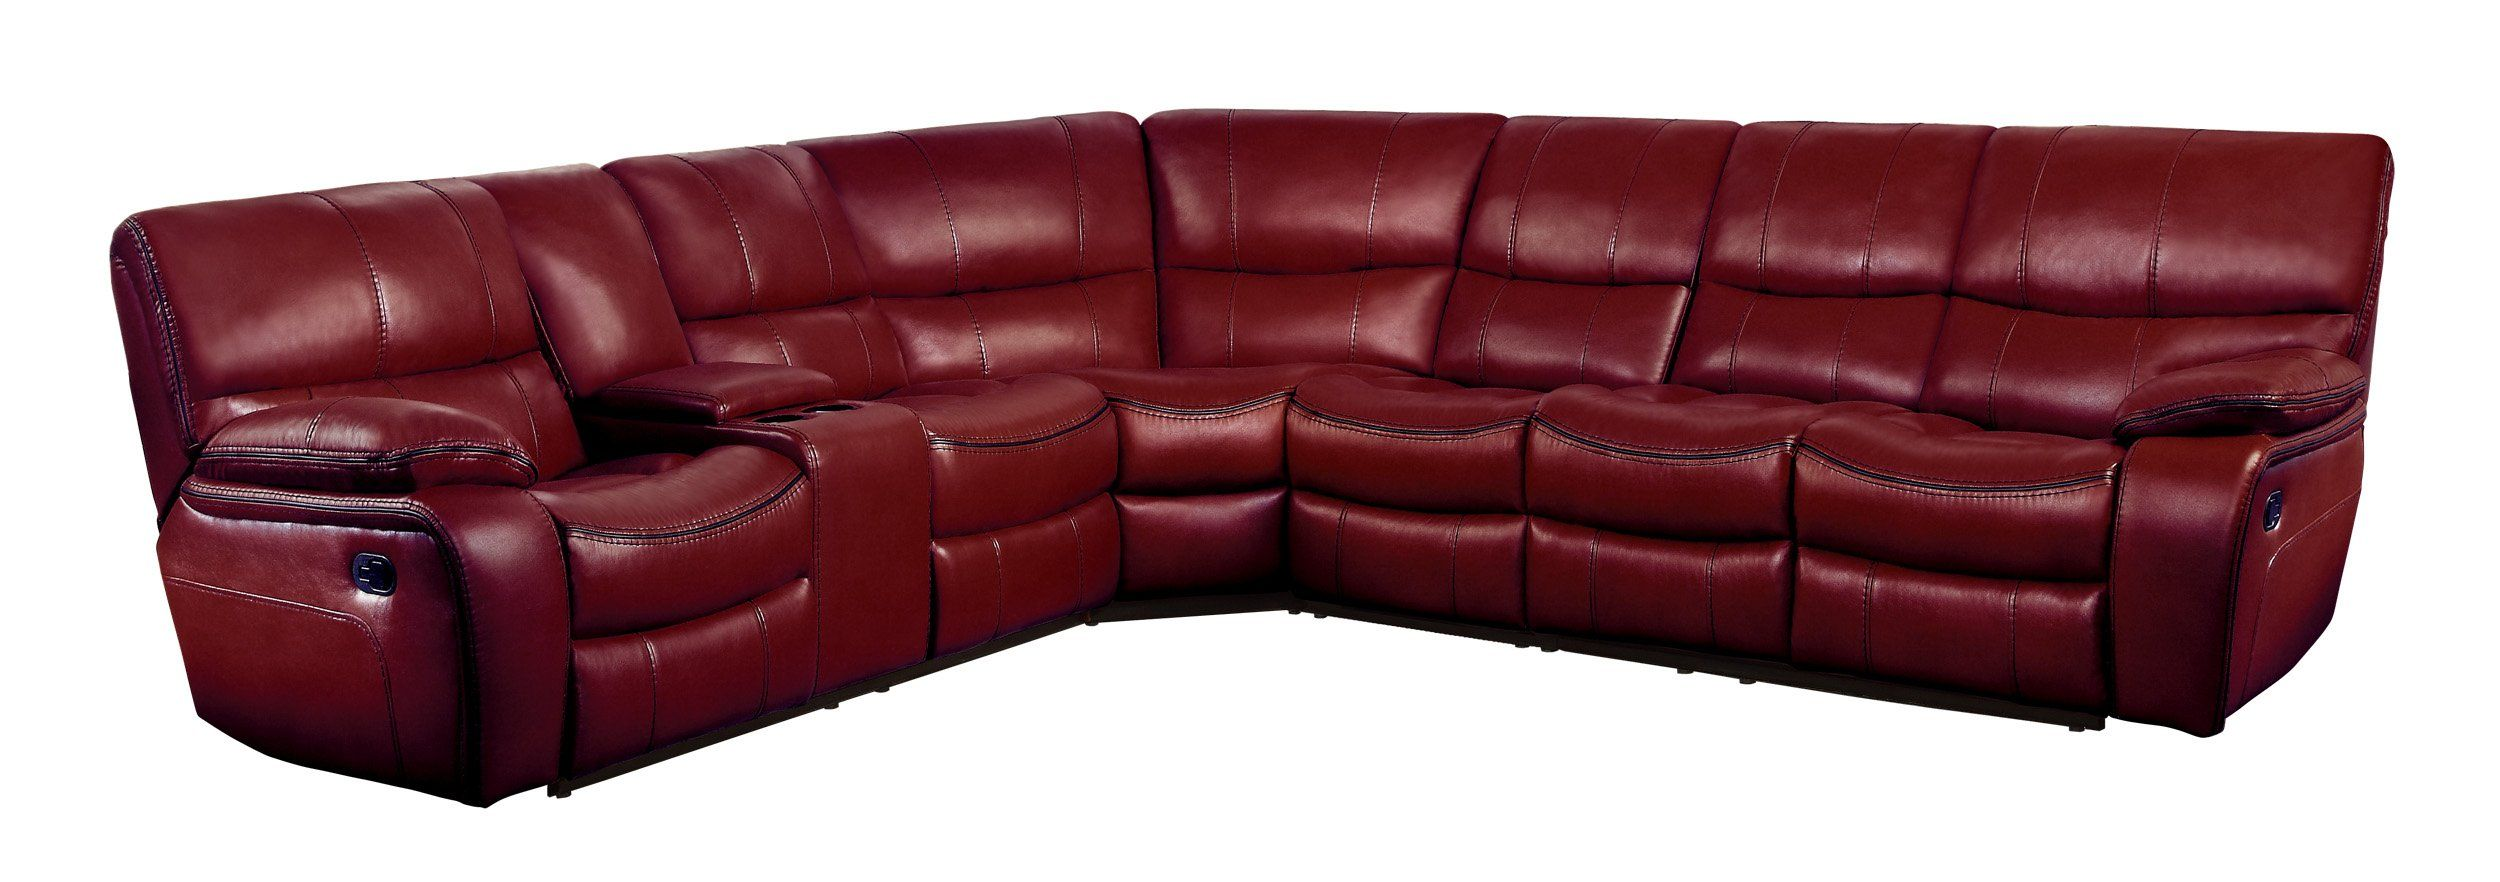 Sofa with cup holders hereo sofa Loveseat with cup holders